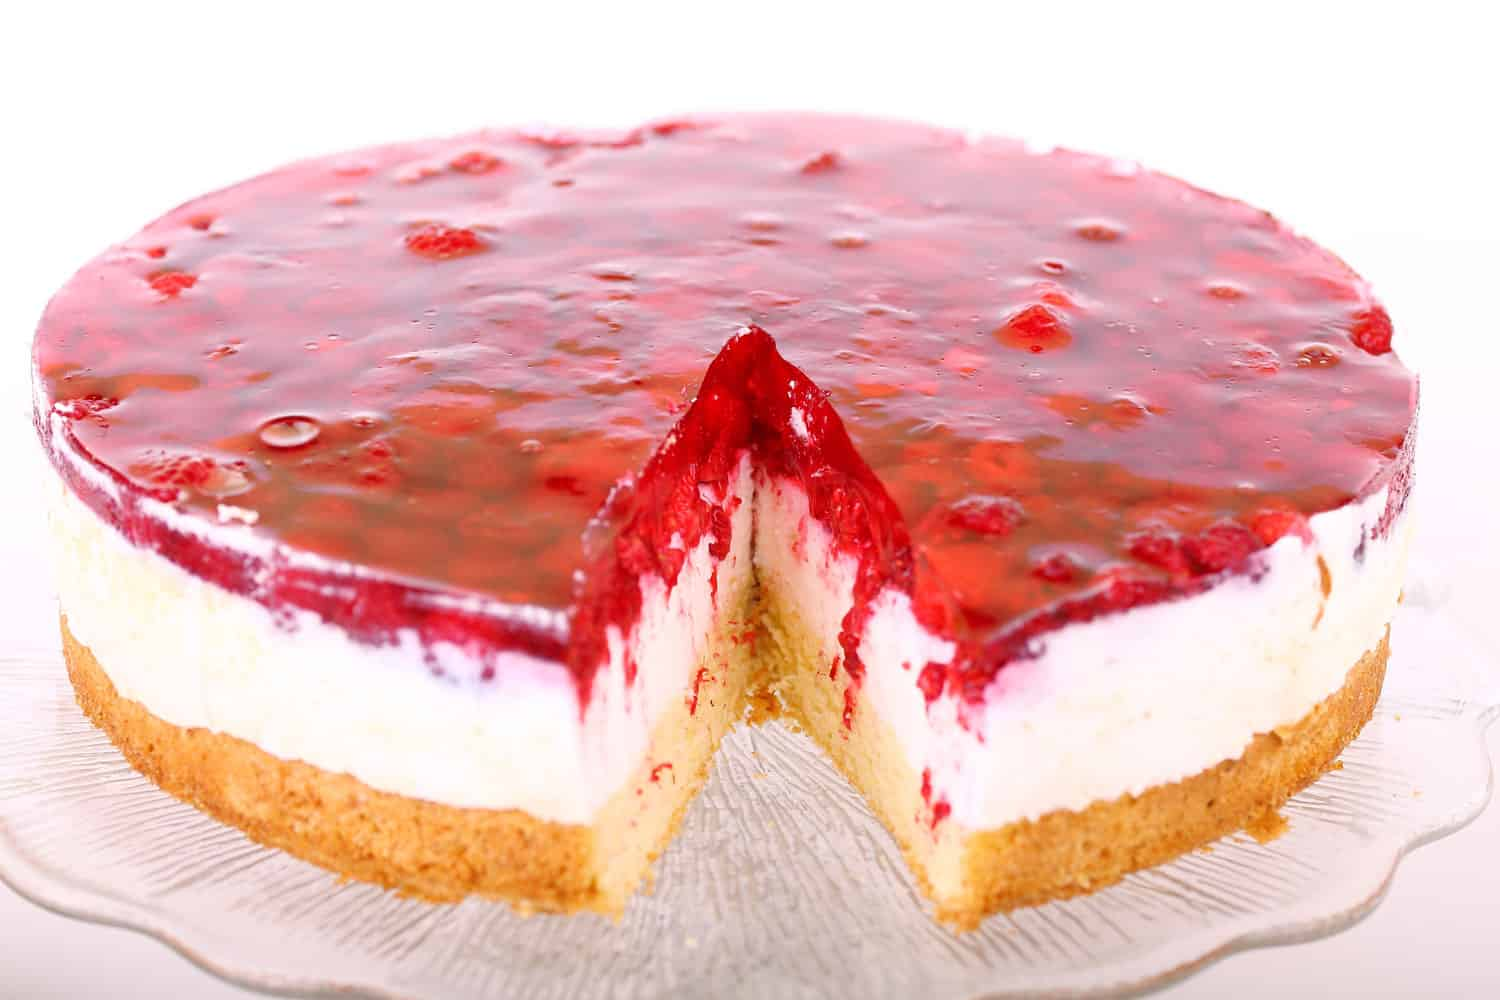 Raspberry cheesecake on a glass serving plate